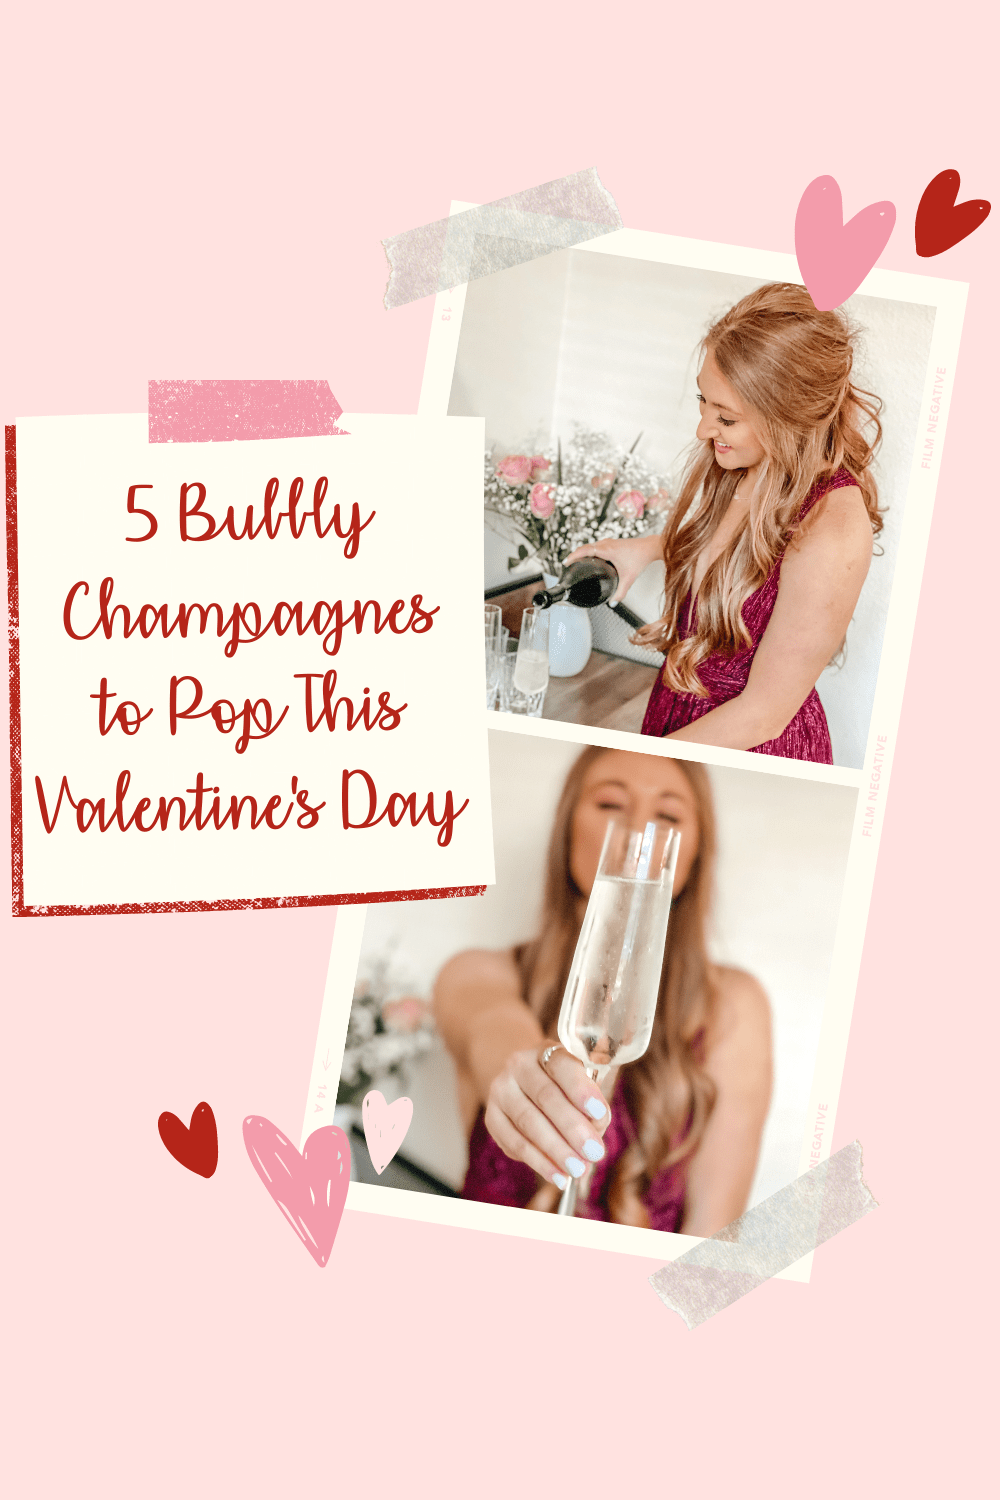 5 Bubbly Champagnes to Pop This Valentine's Day// pouring champagne prosecco for Valentine's Day and wearing a dress for Valentine's Day from Nordstrom Pinterest Pin